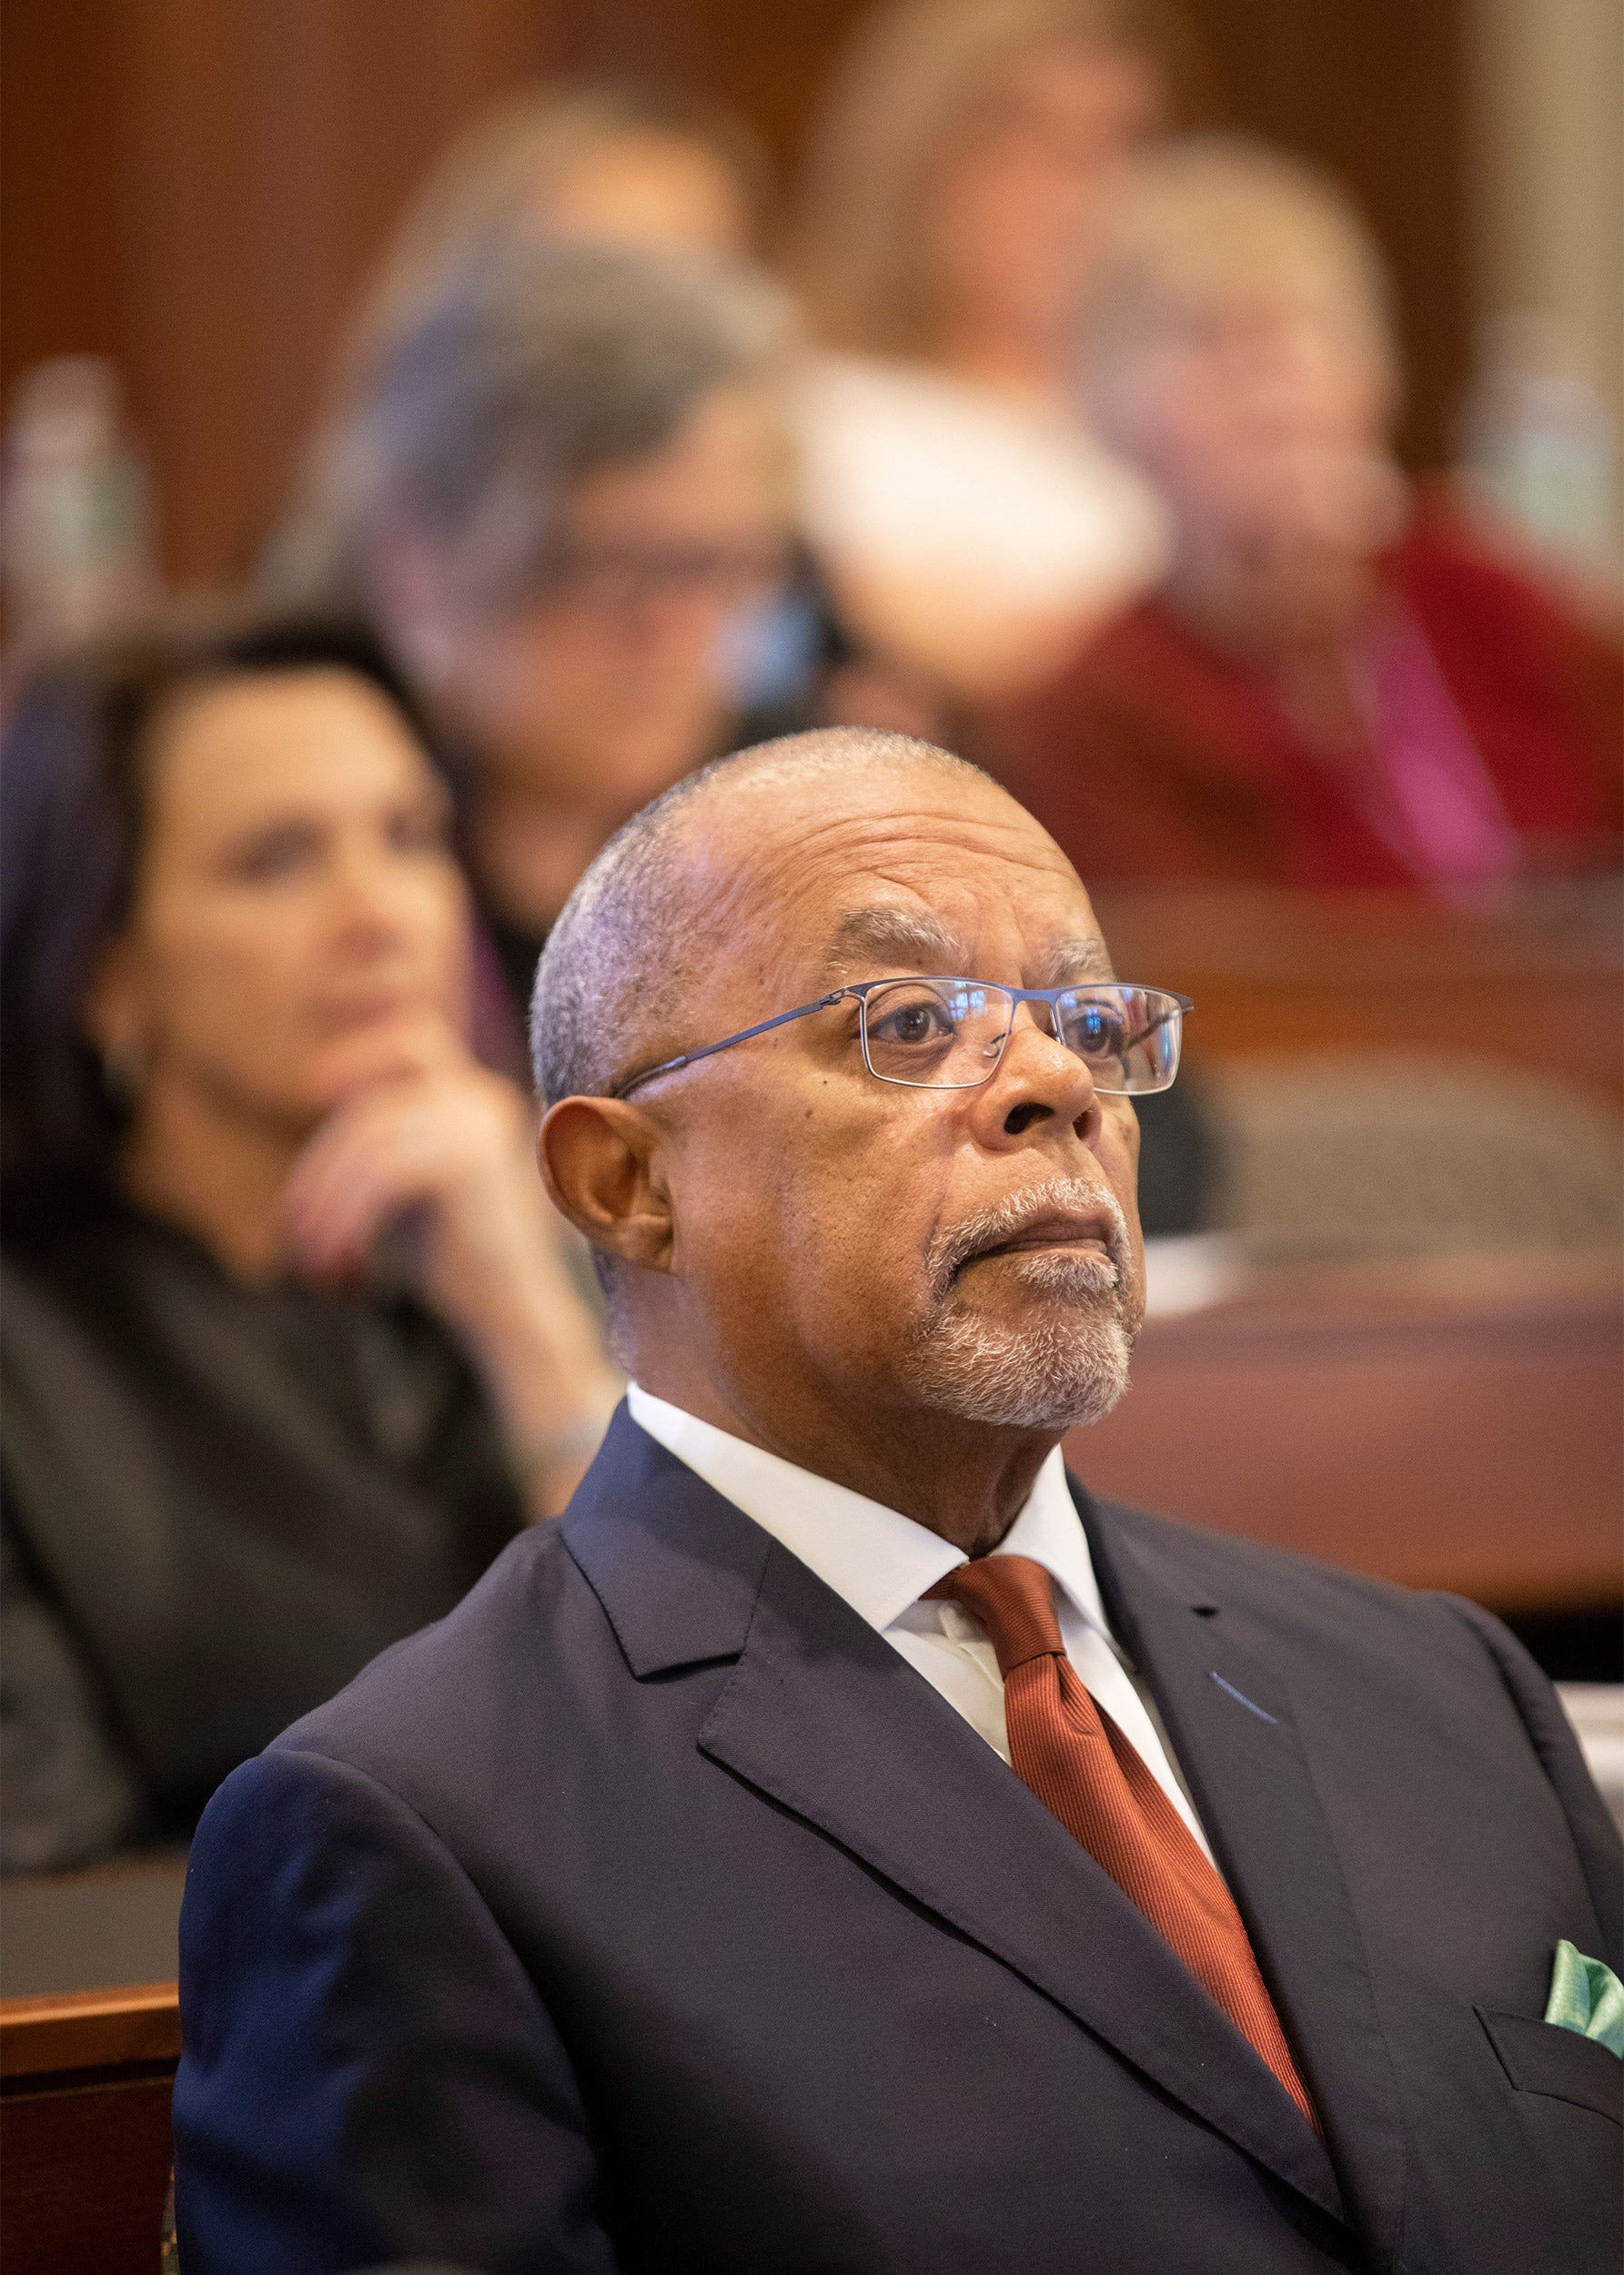 Henry Louis Gates Jr. sitting among people in audience.